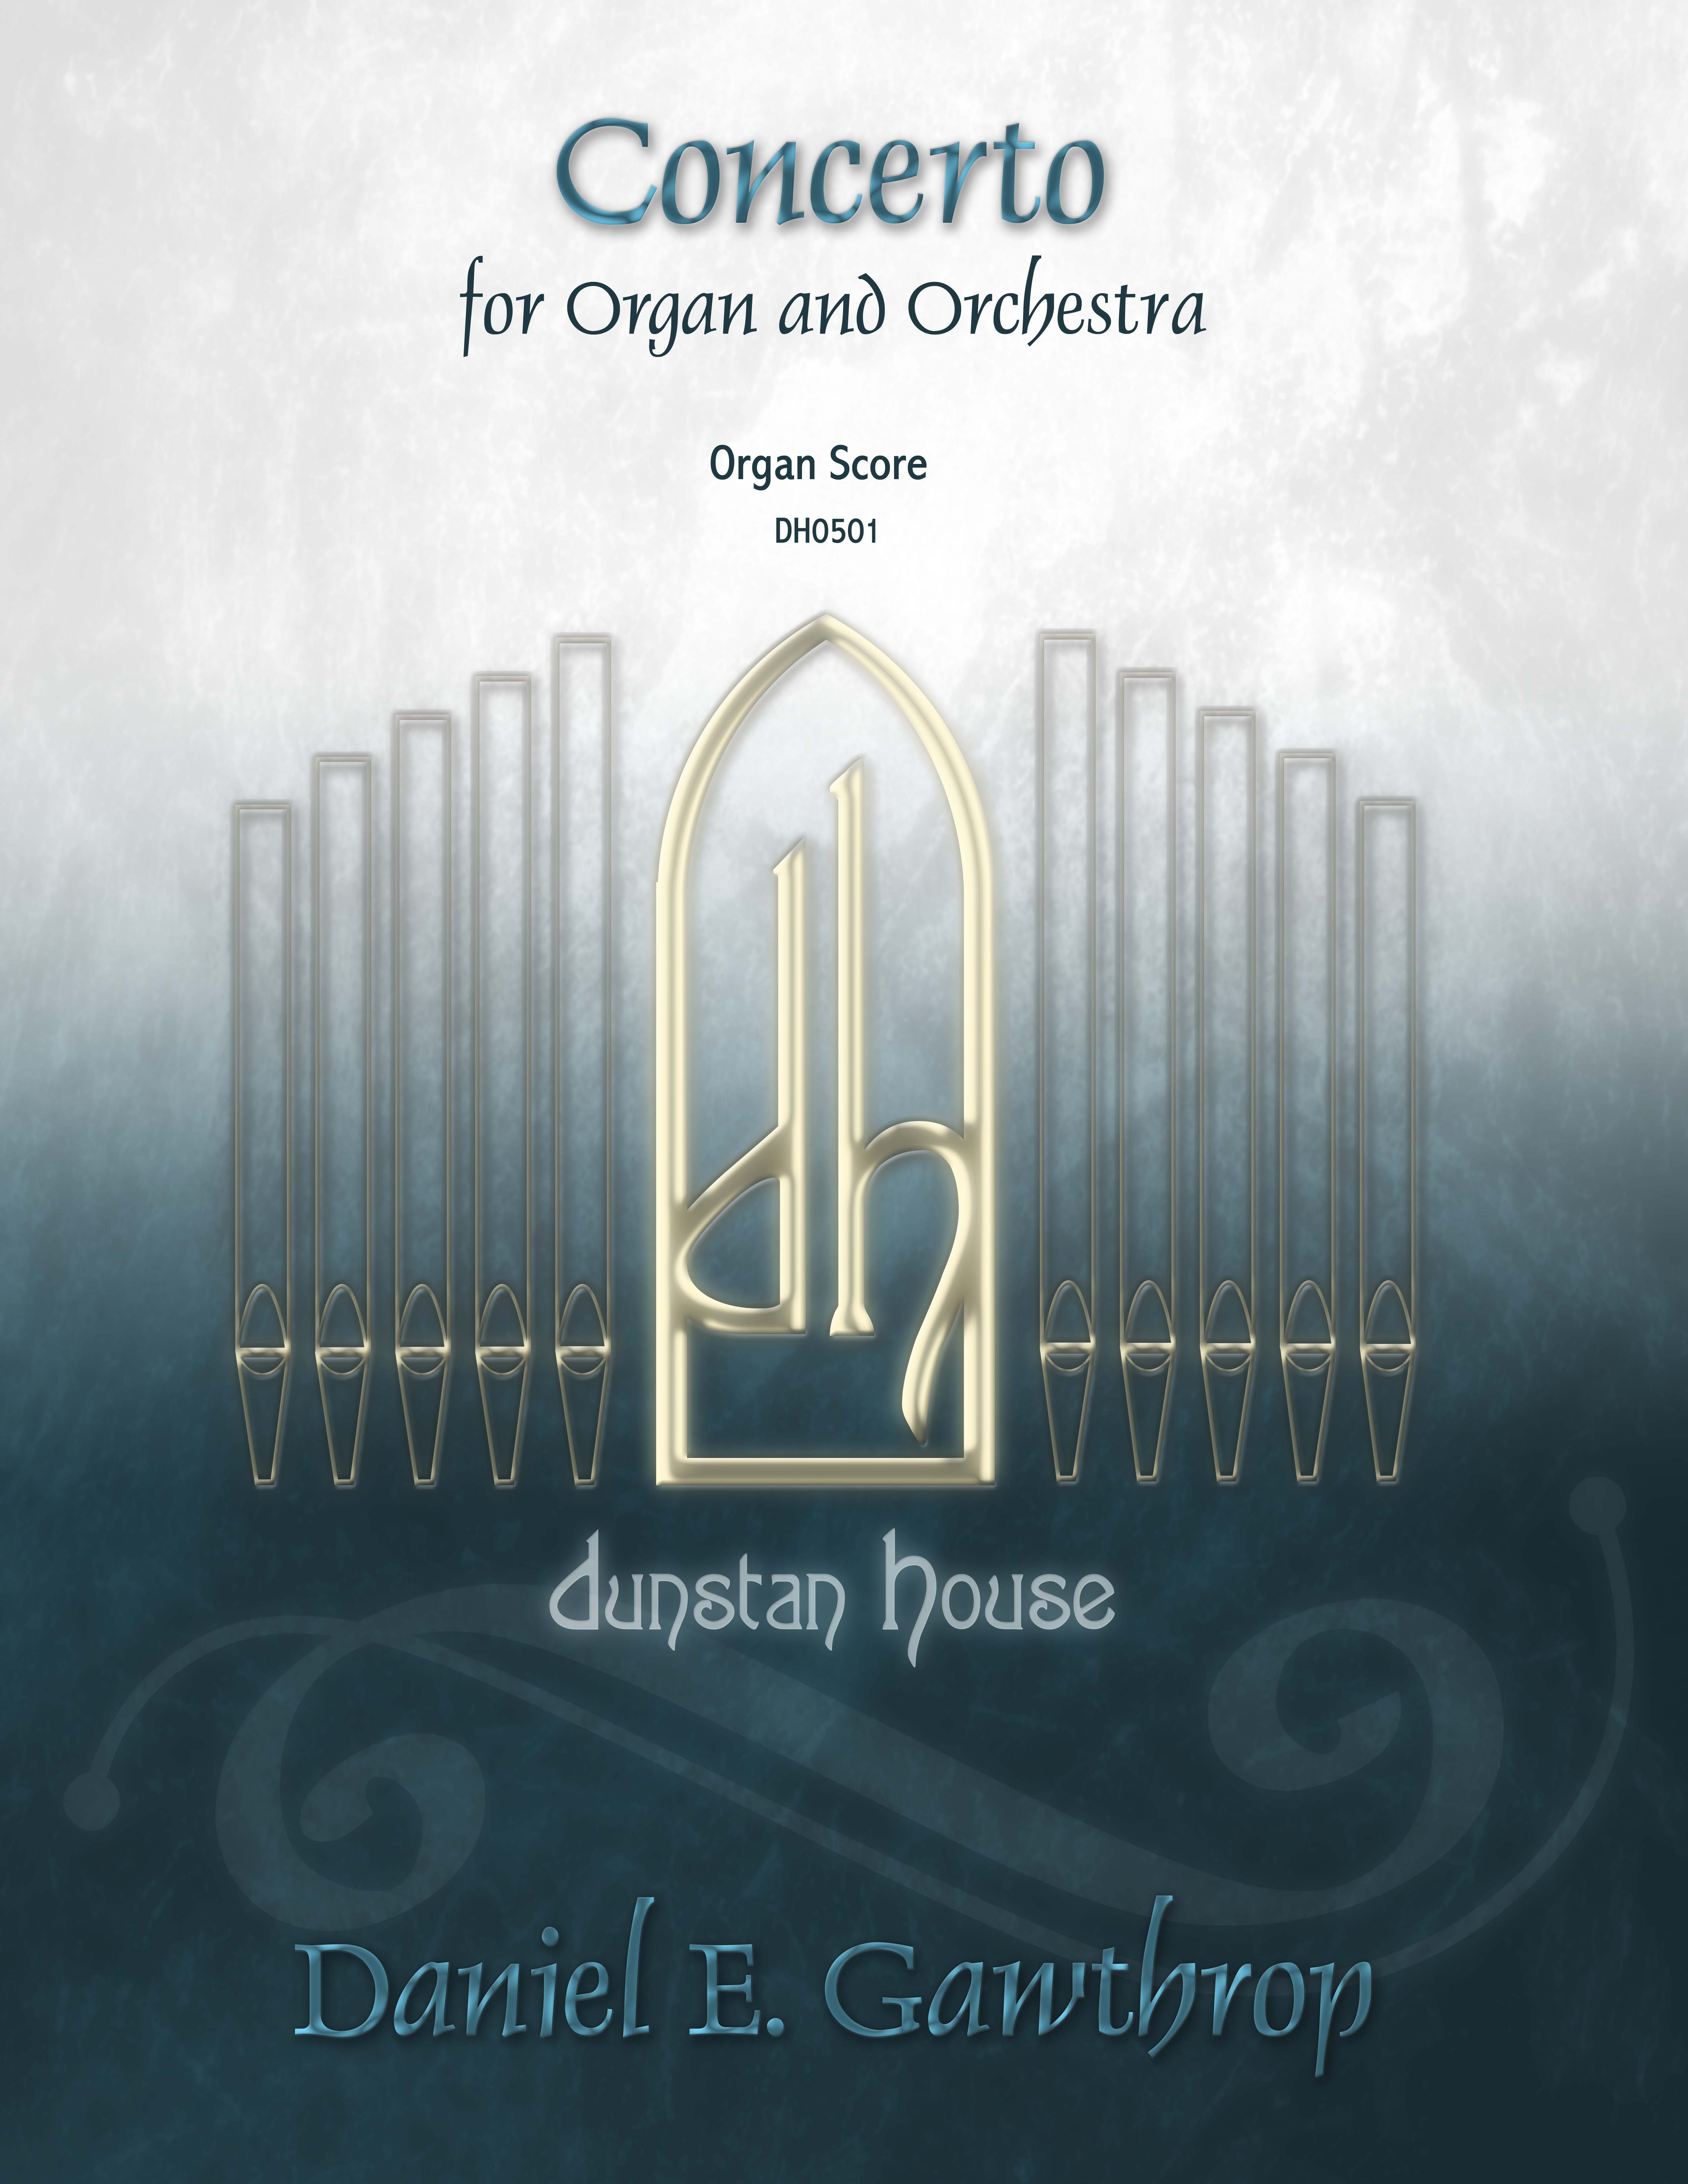 Concert for Organ and Orchestra